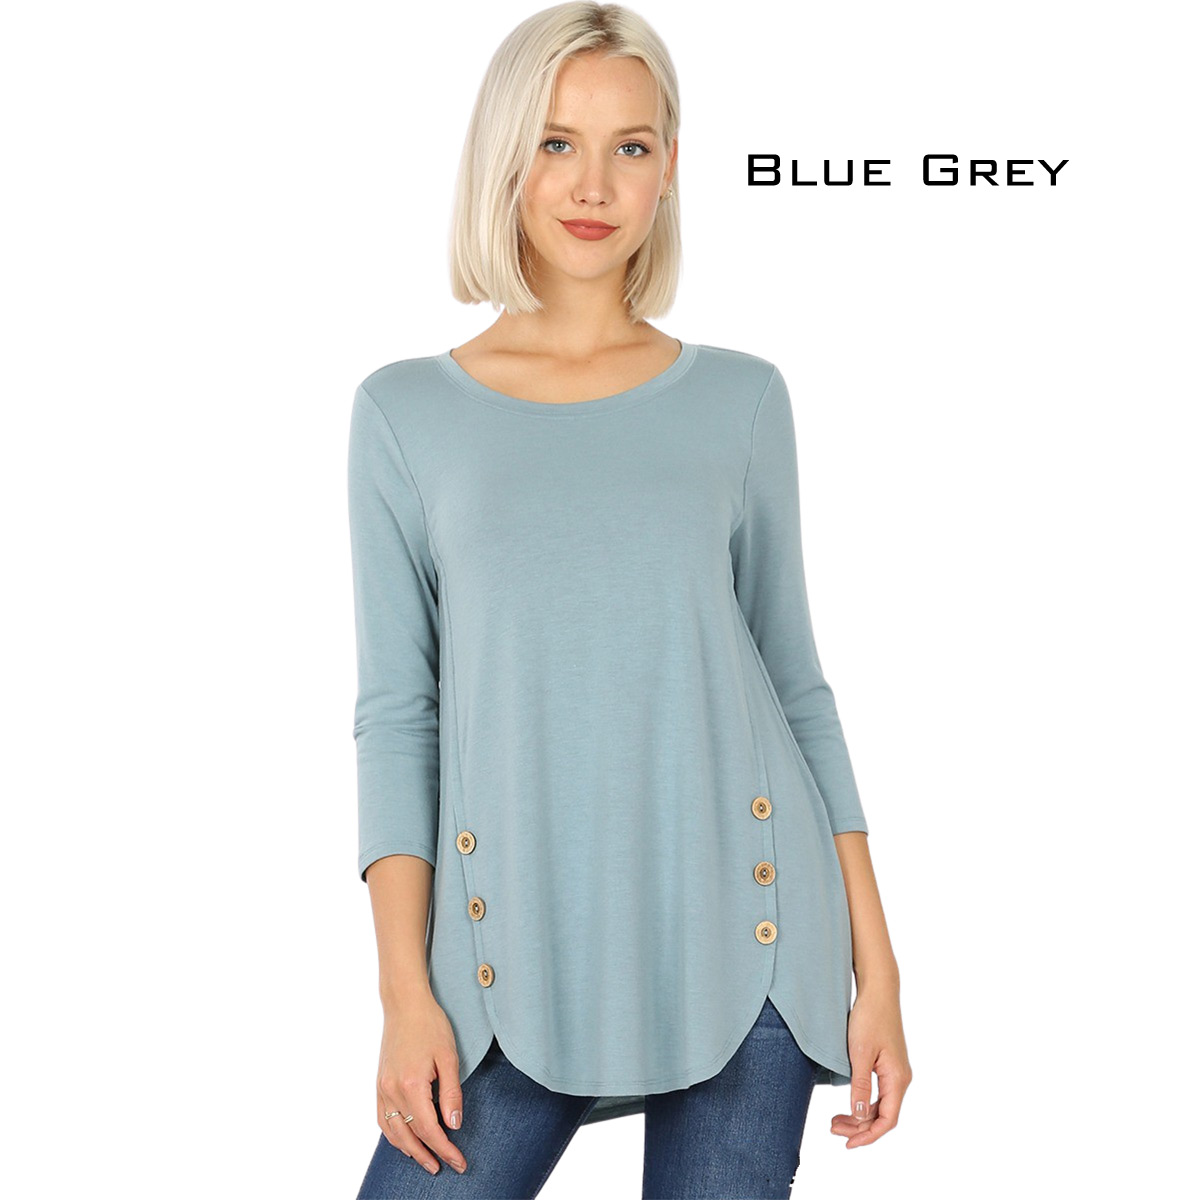 BLUE GREY 3/4 Sleeve Side Wood Buttons Top 2032